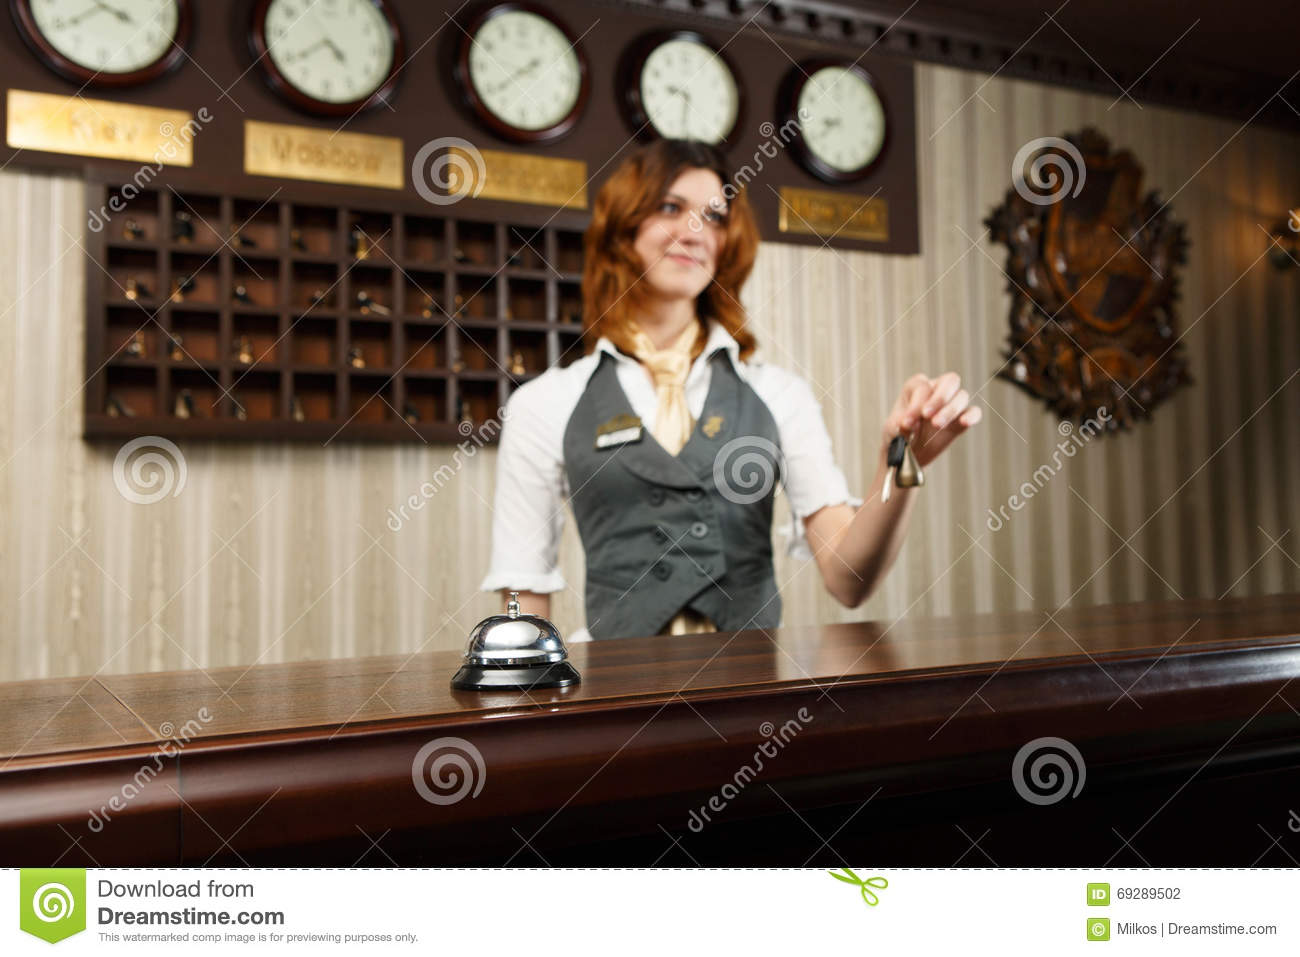 Hotel Receptionist And Counter Desk With Bell Stock Photo - Image ...